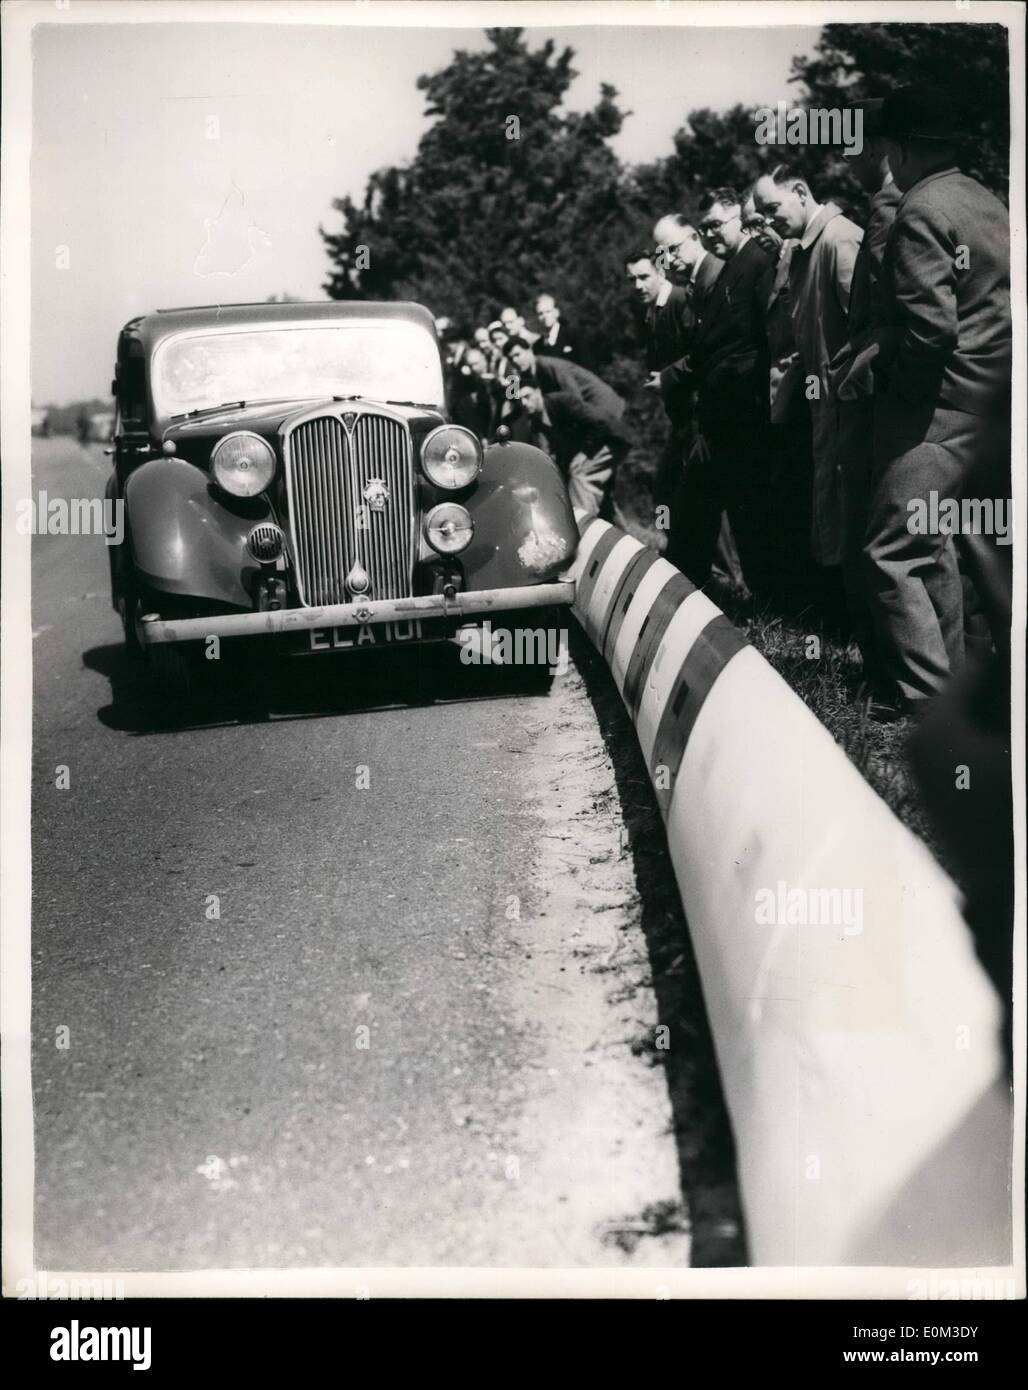 Jun. 06, 1953 - Demonstrating The Dahl Safety Kerb New Road Device For Saving Life.. A demonstration was held this afternoon along a stretch of road two miles South of Bletchloy, beside the Grand Union Canal - of the ''Dahl Safety Kerb'' - which consists of white reinforce concrete section supported that on impact by a nearside front tyre the course of the vehicle is deflected along the direction of the ''Kerb'' producing a braking effect which onables the driver to regain control - Stock Image